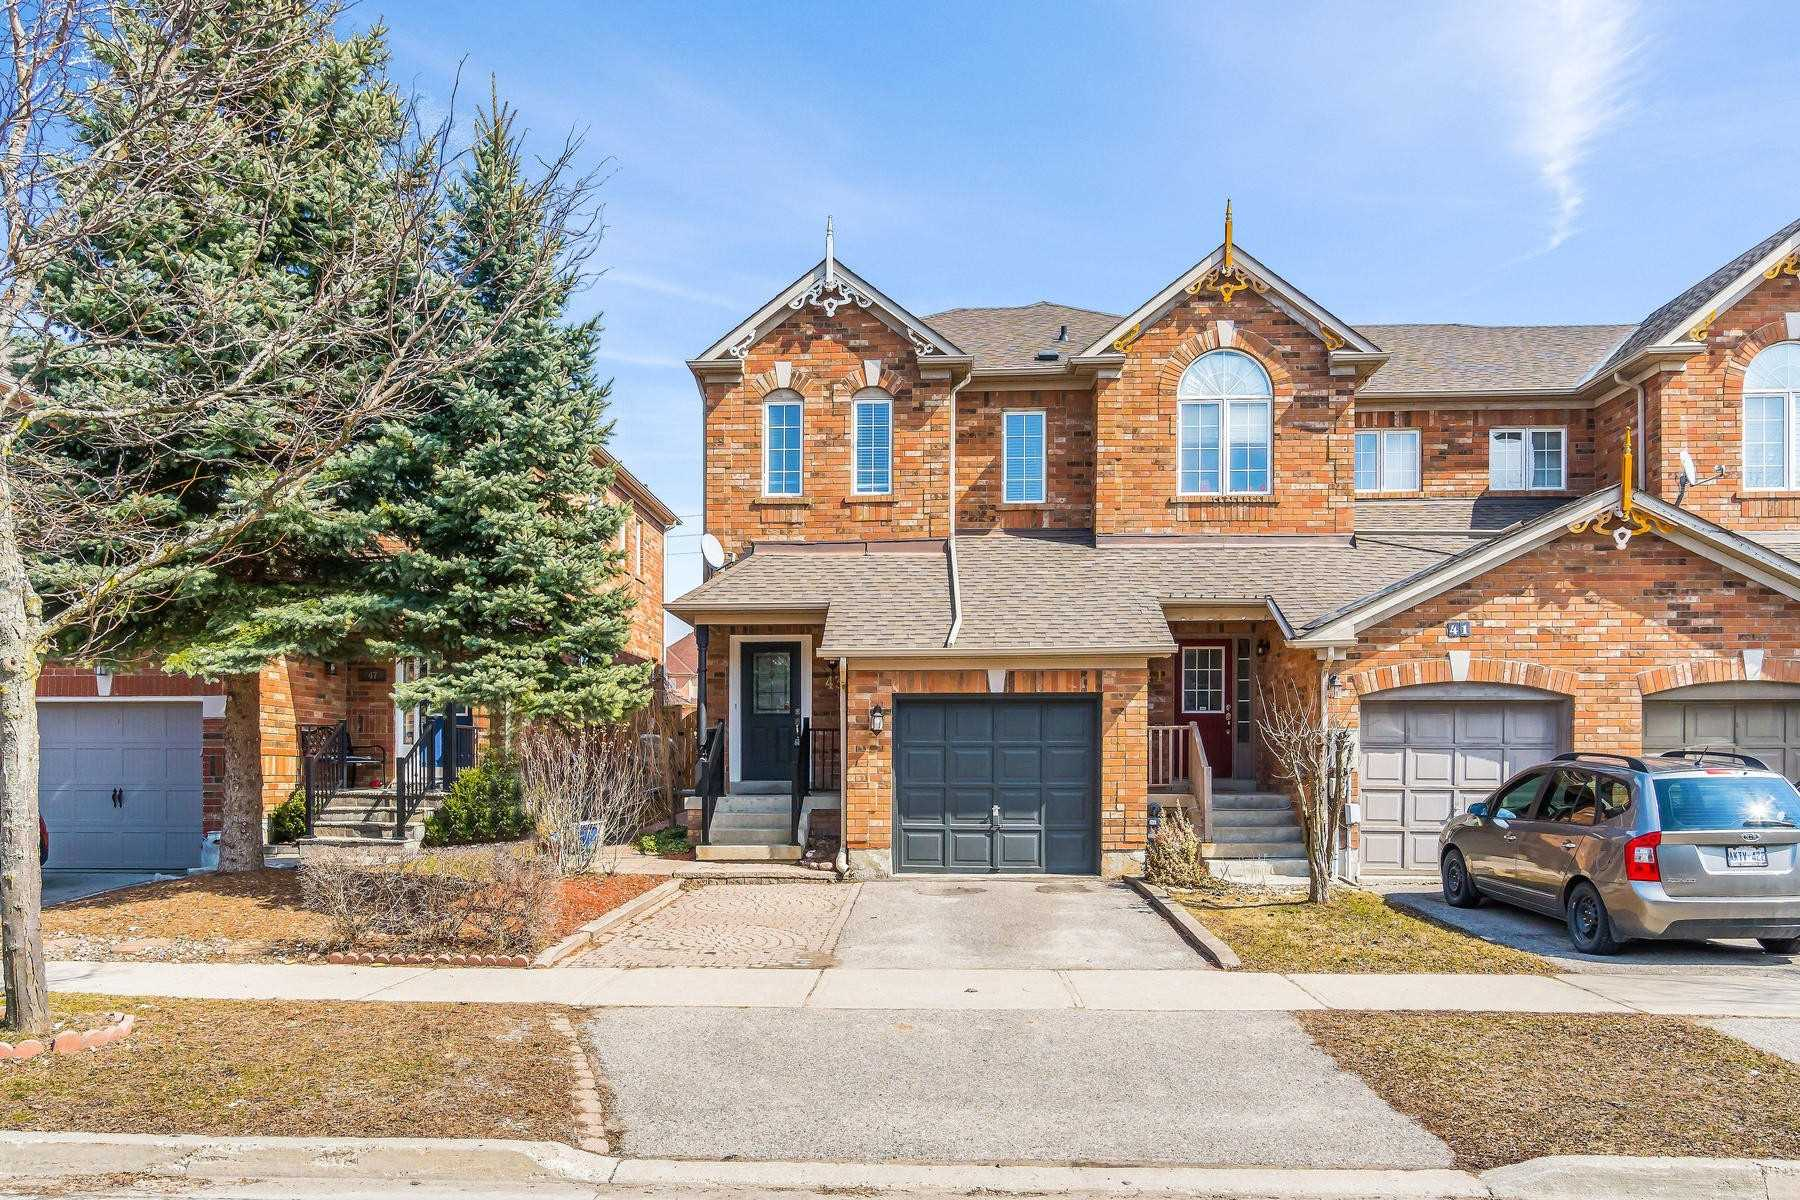 pictures of house for sale MLS: N4729188 located at 43 Snedden Ave, Aurora L4G7K4